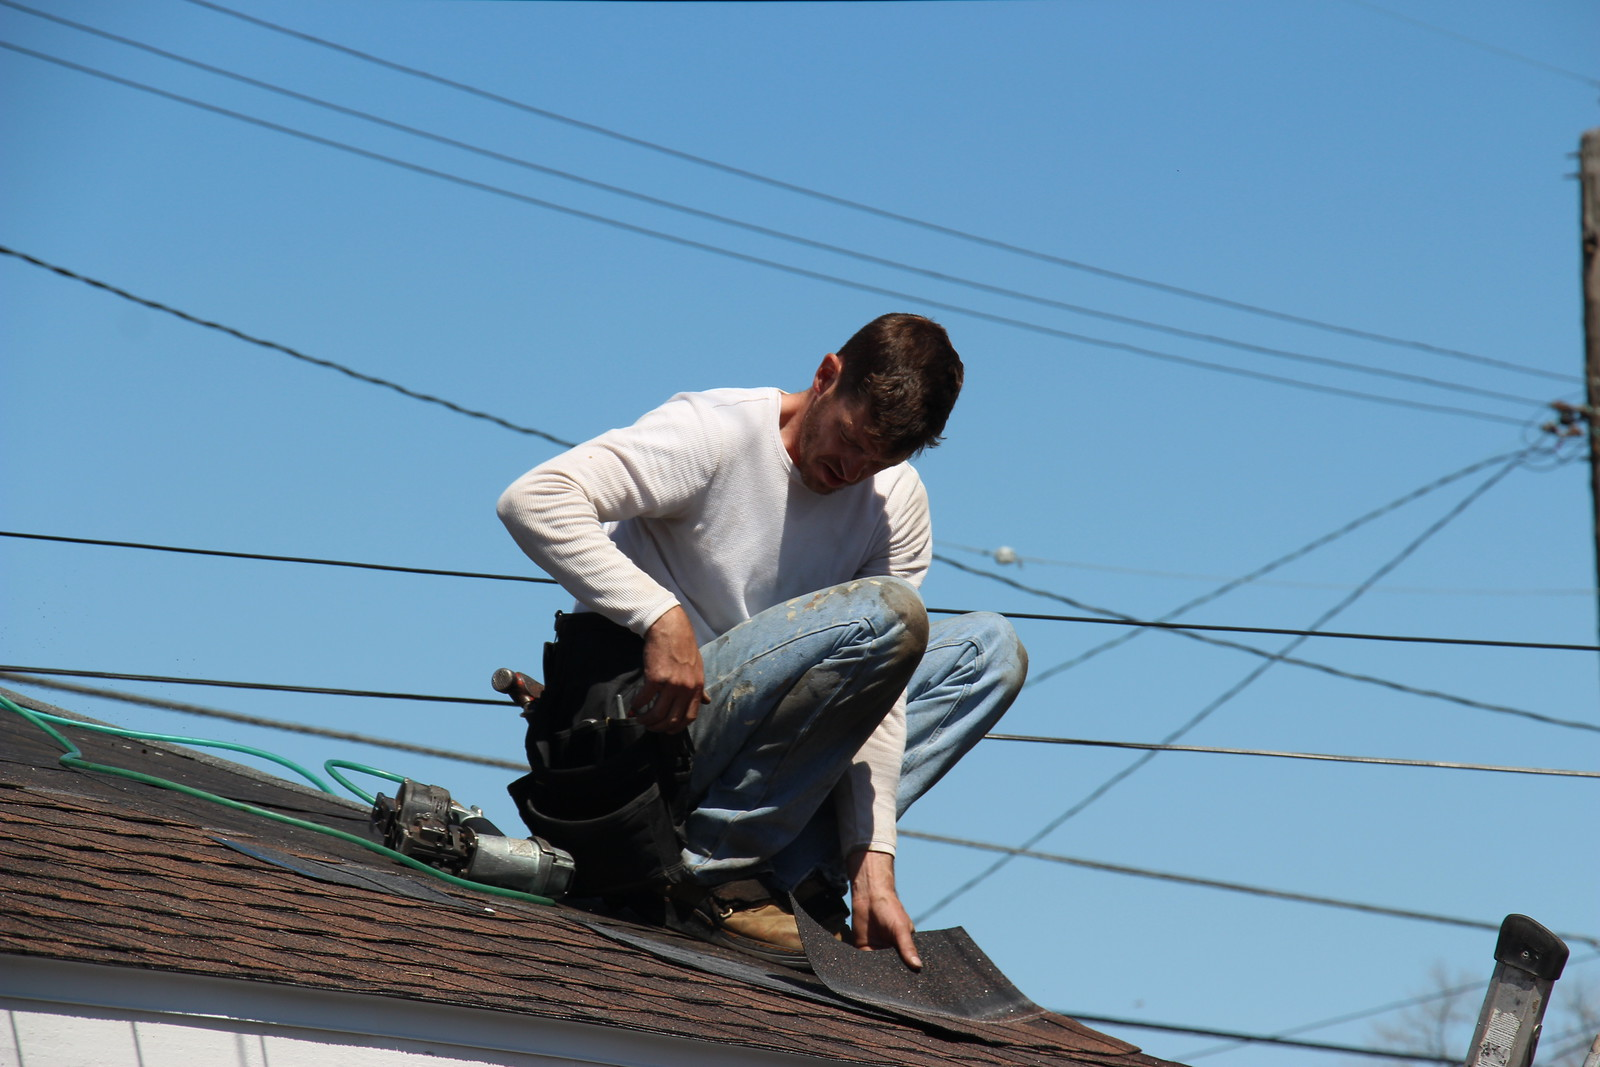 Wyandotte Roofer2 Expert Home Improvement Advice By